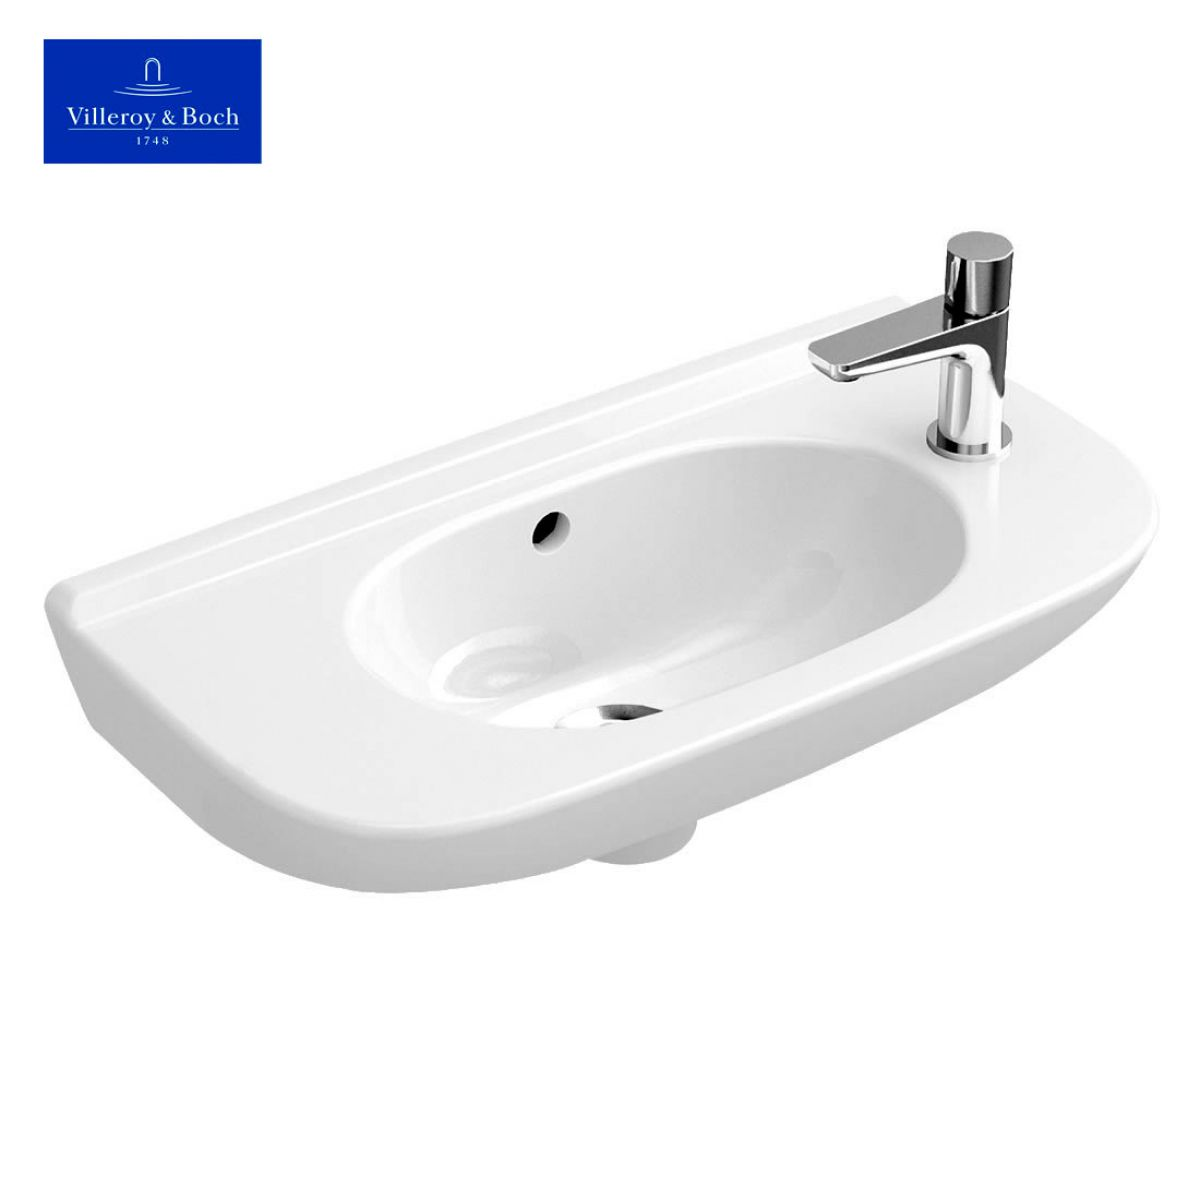 villeroy boch o novo compact narrow handwash basin uk. Black Bedroom Furniture Sets. Home Design Ideas